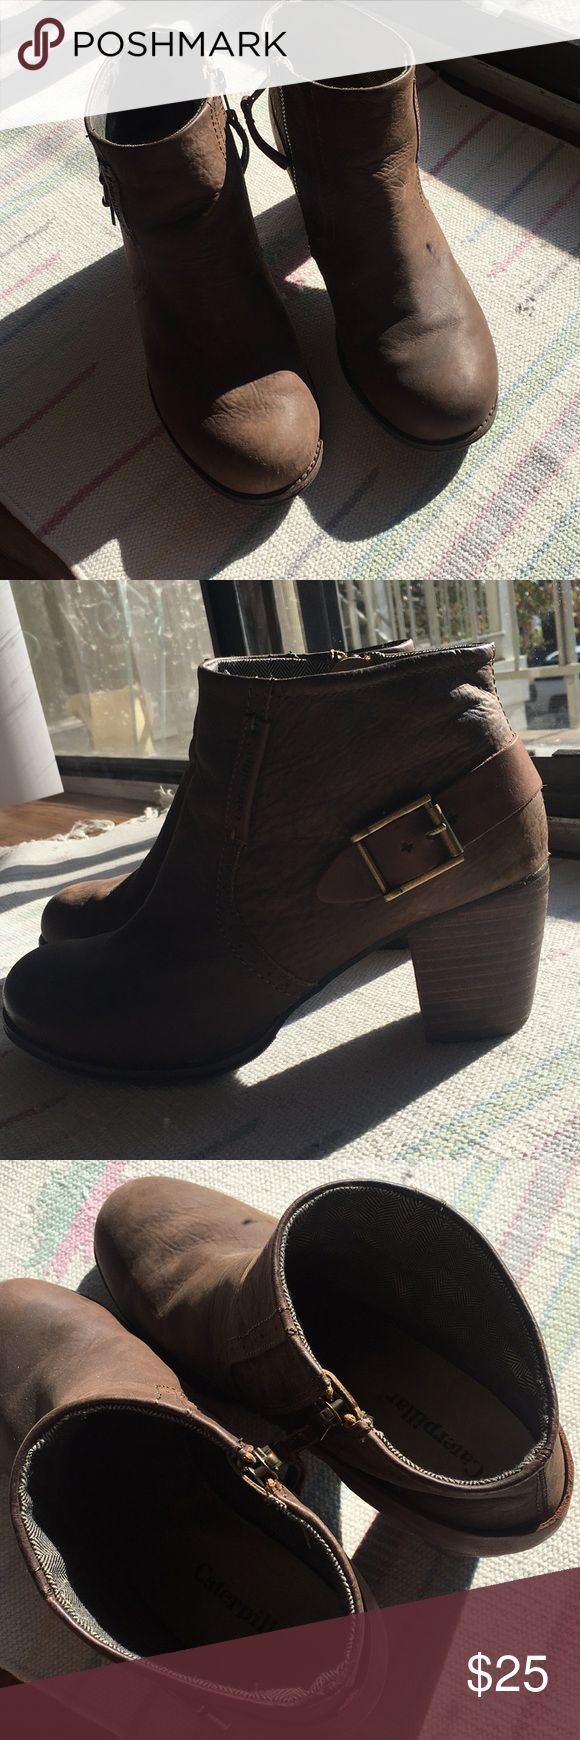 """Brown leather booties Cute brown caterpillar leather booties with a 2.5"""" heel. Great used condition. Caterpillar Shoes Ankle Boots & Booties"""